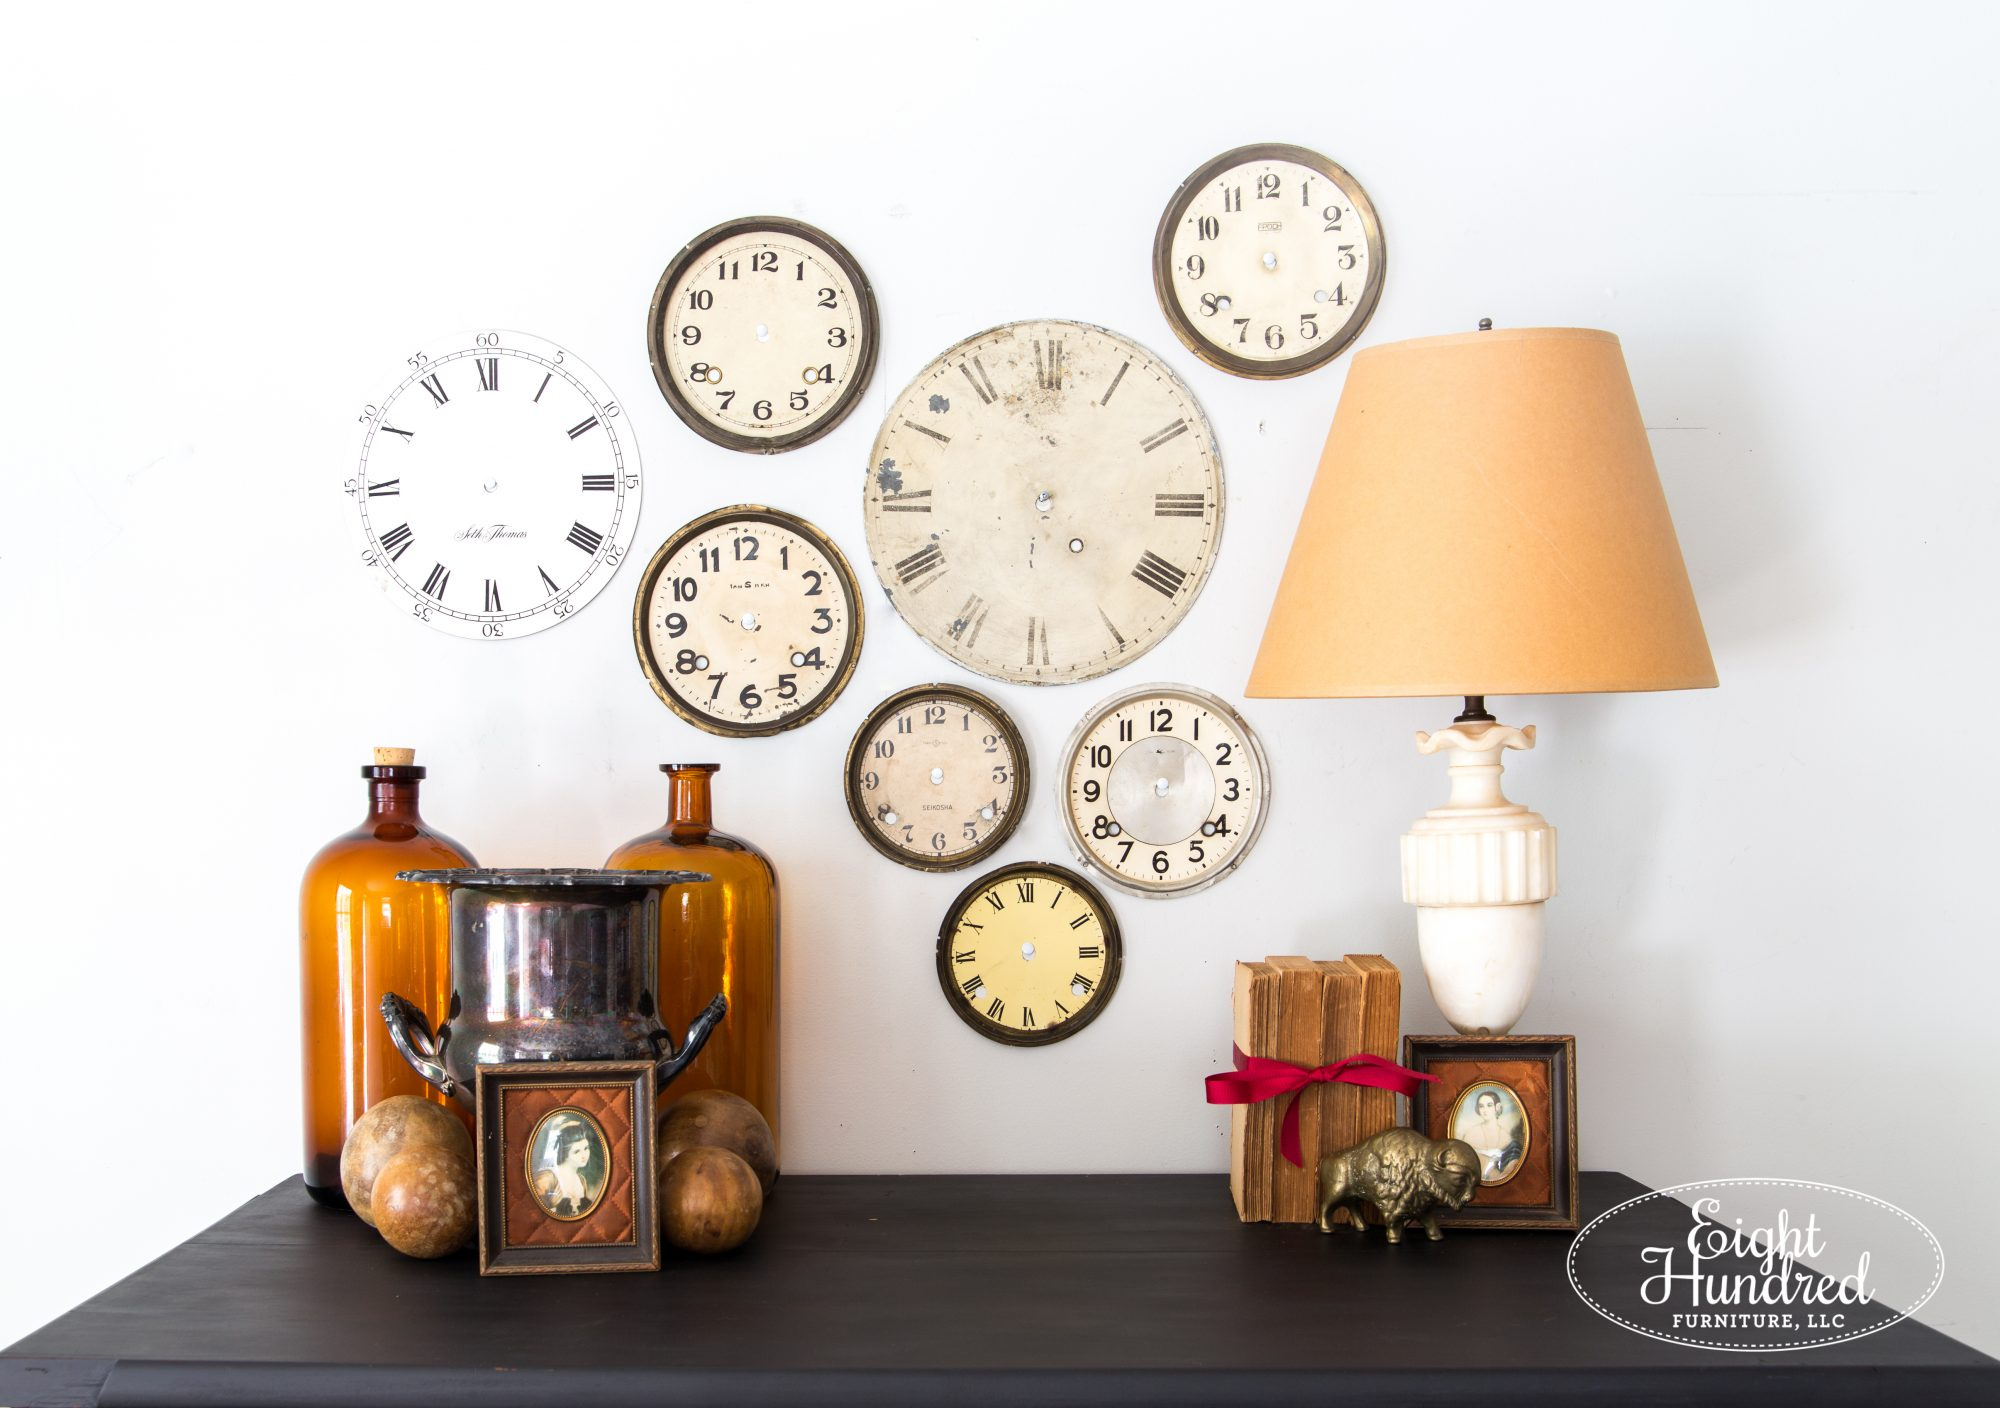 Collage of clock faces, amber bottles, alabaster lamp, wooden balls, silver ice bucket